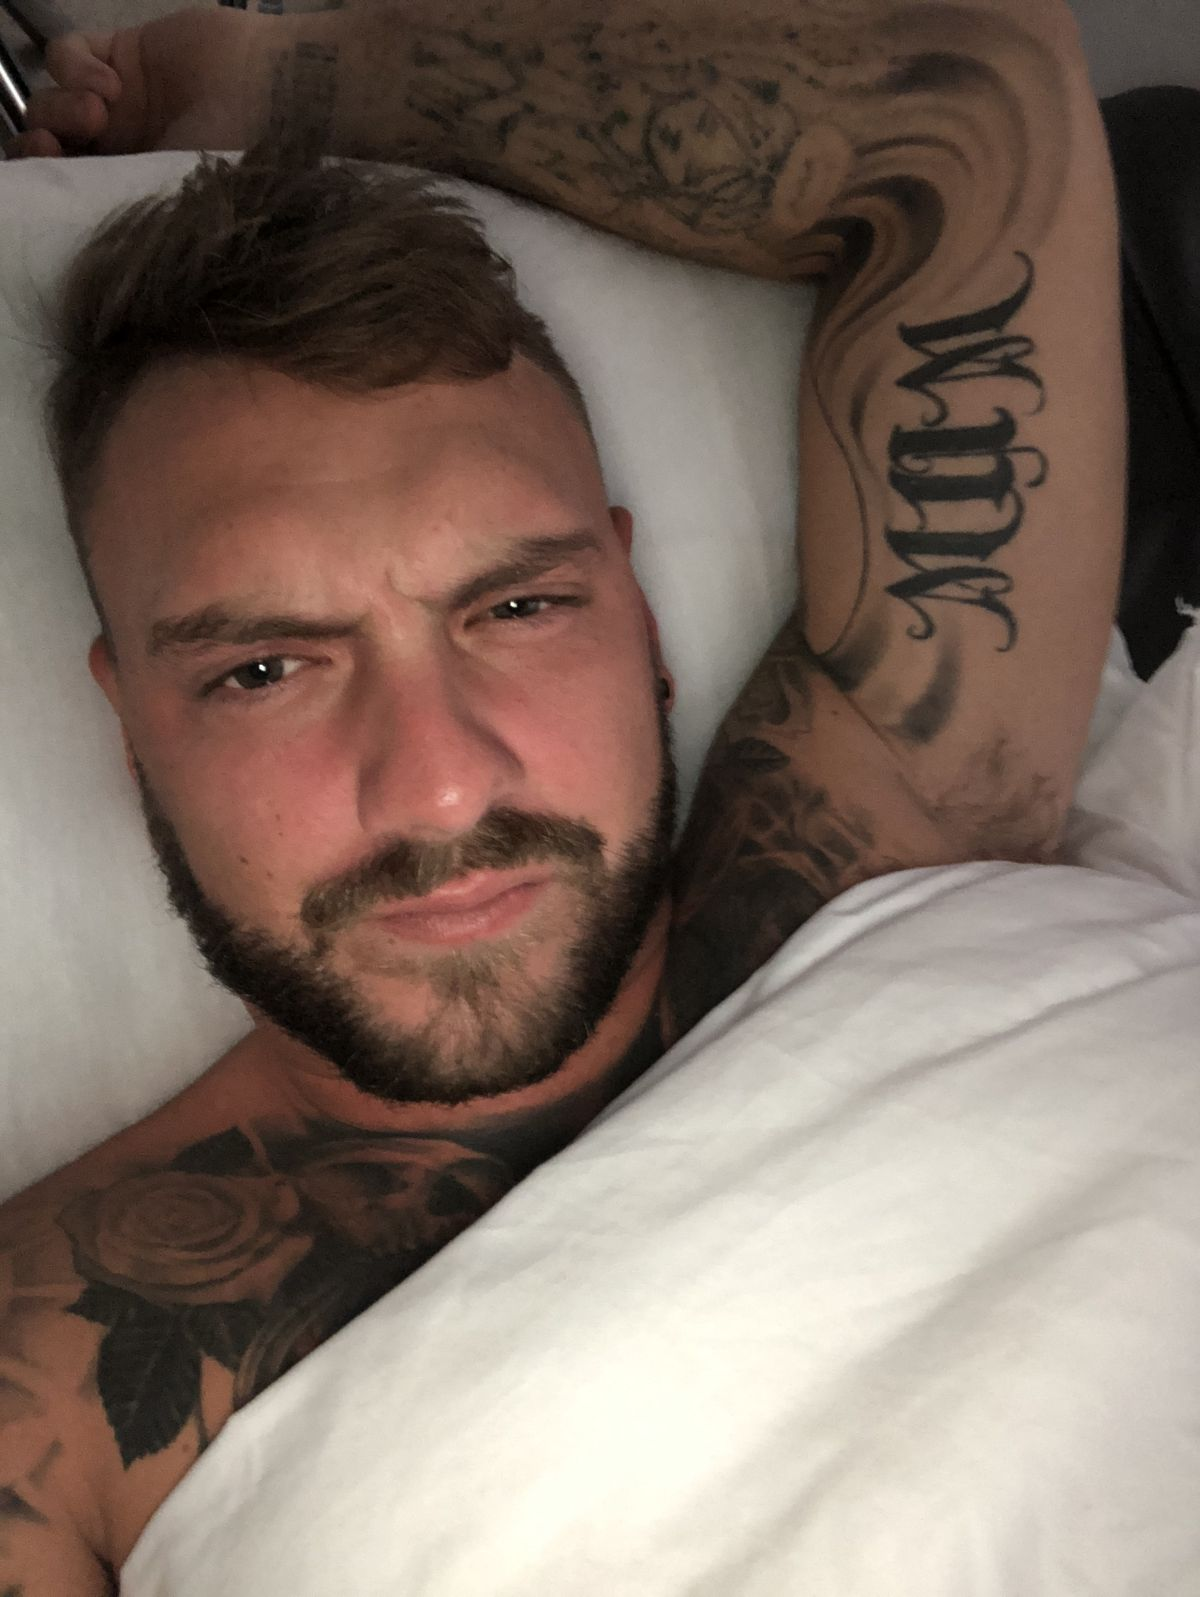 Free nudes of Paul Collins onlyfans leaked